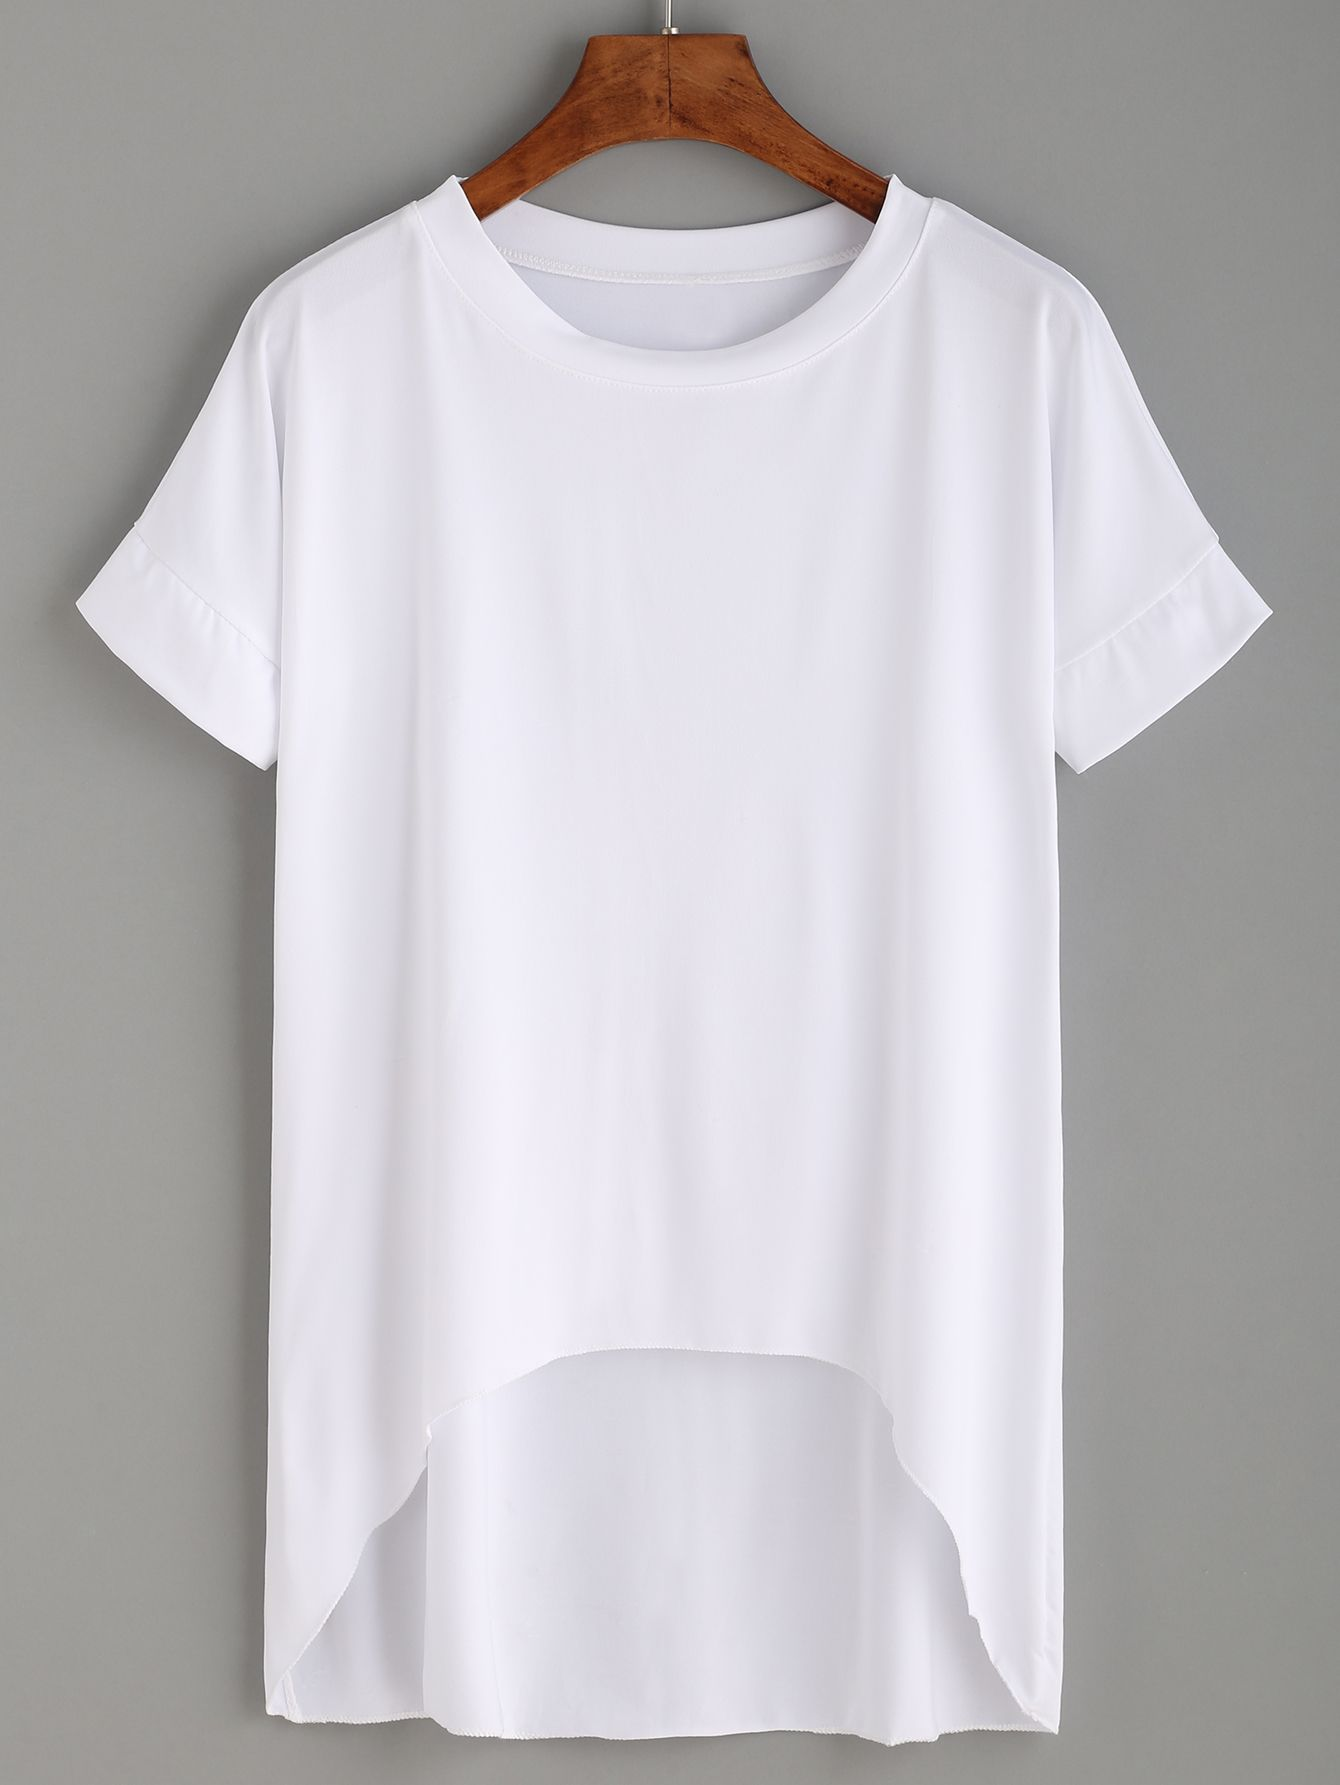 c0af8ccceb8 Shop White High Low T-shirt online. SheIn offers White High Low T-shirt    more to fit your fashionable needs.